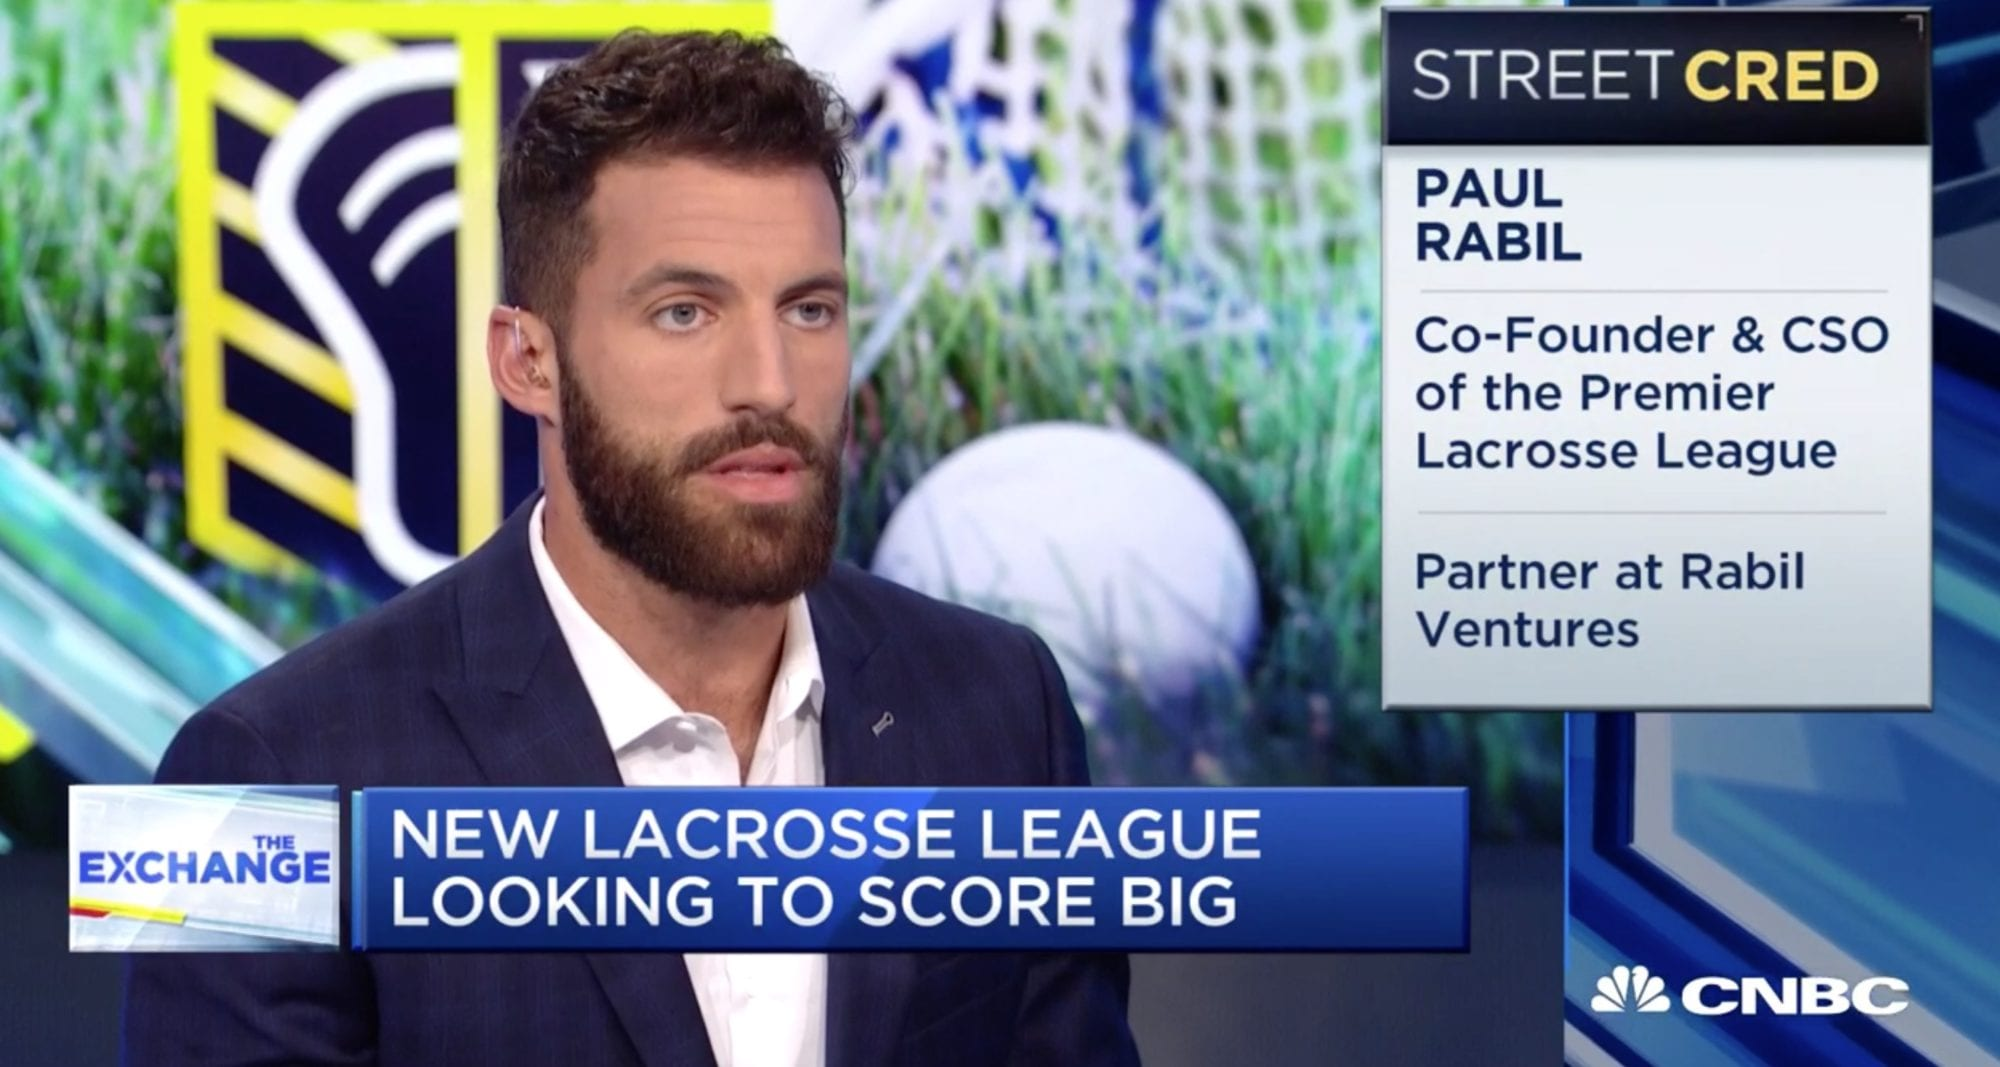 betting on new pro lacrosse business model